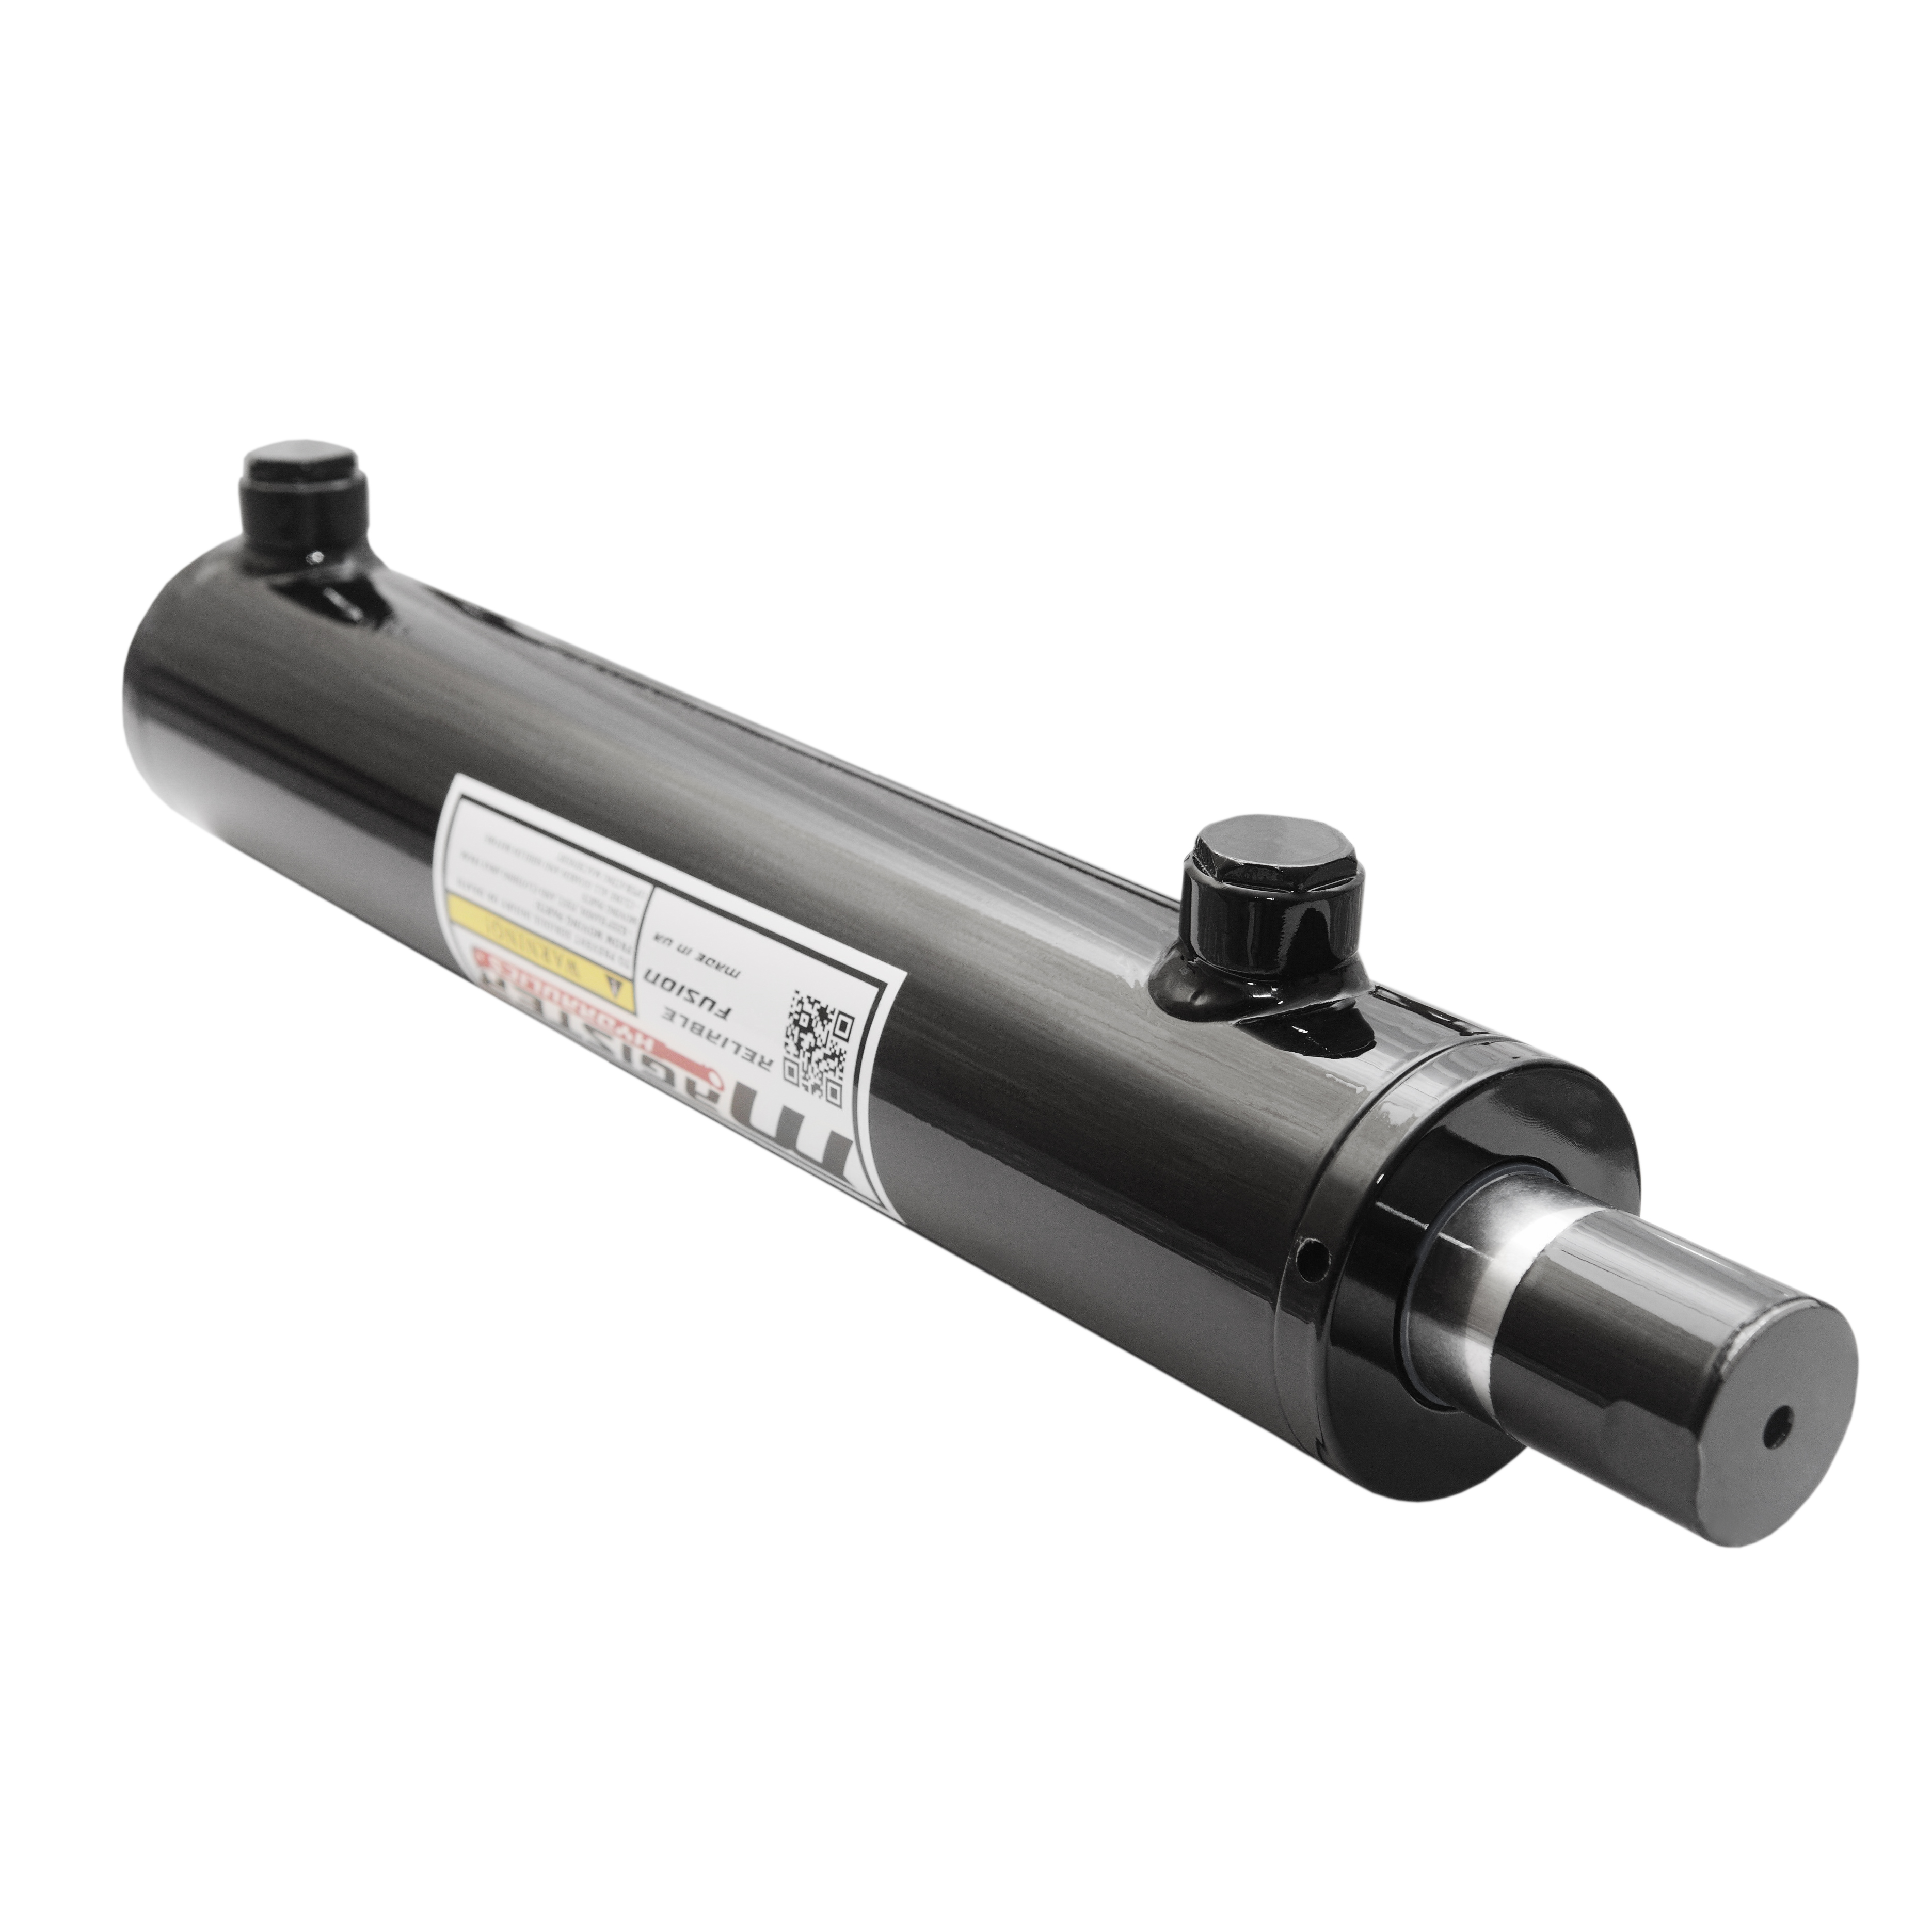 2 bore x 9 stroke hydraulic cylinder, welded universal double acting cylinder | Magister Hydraulics